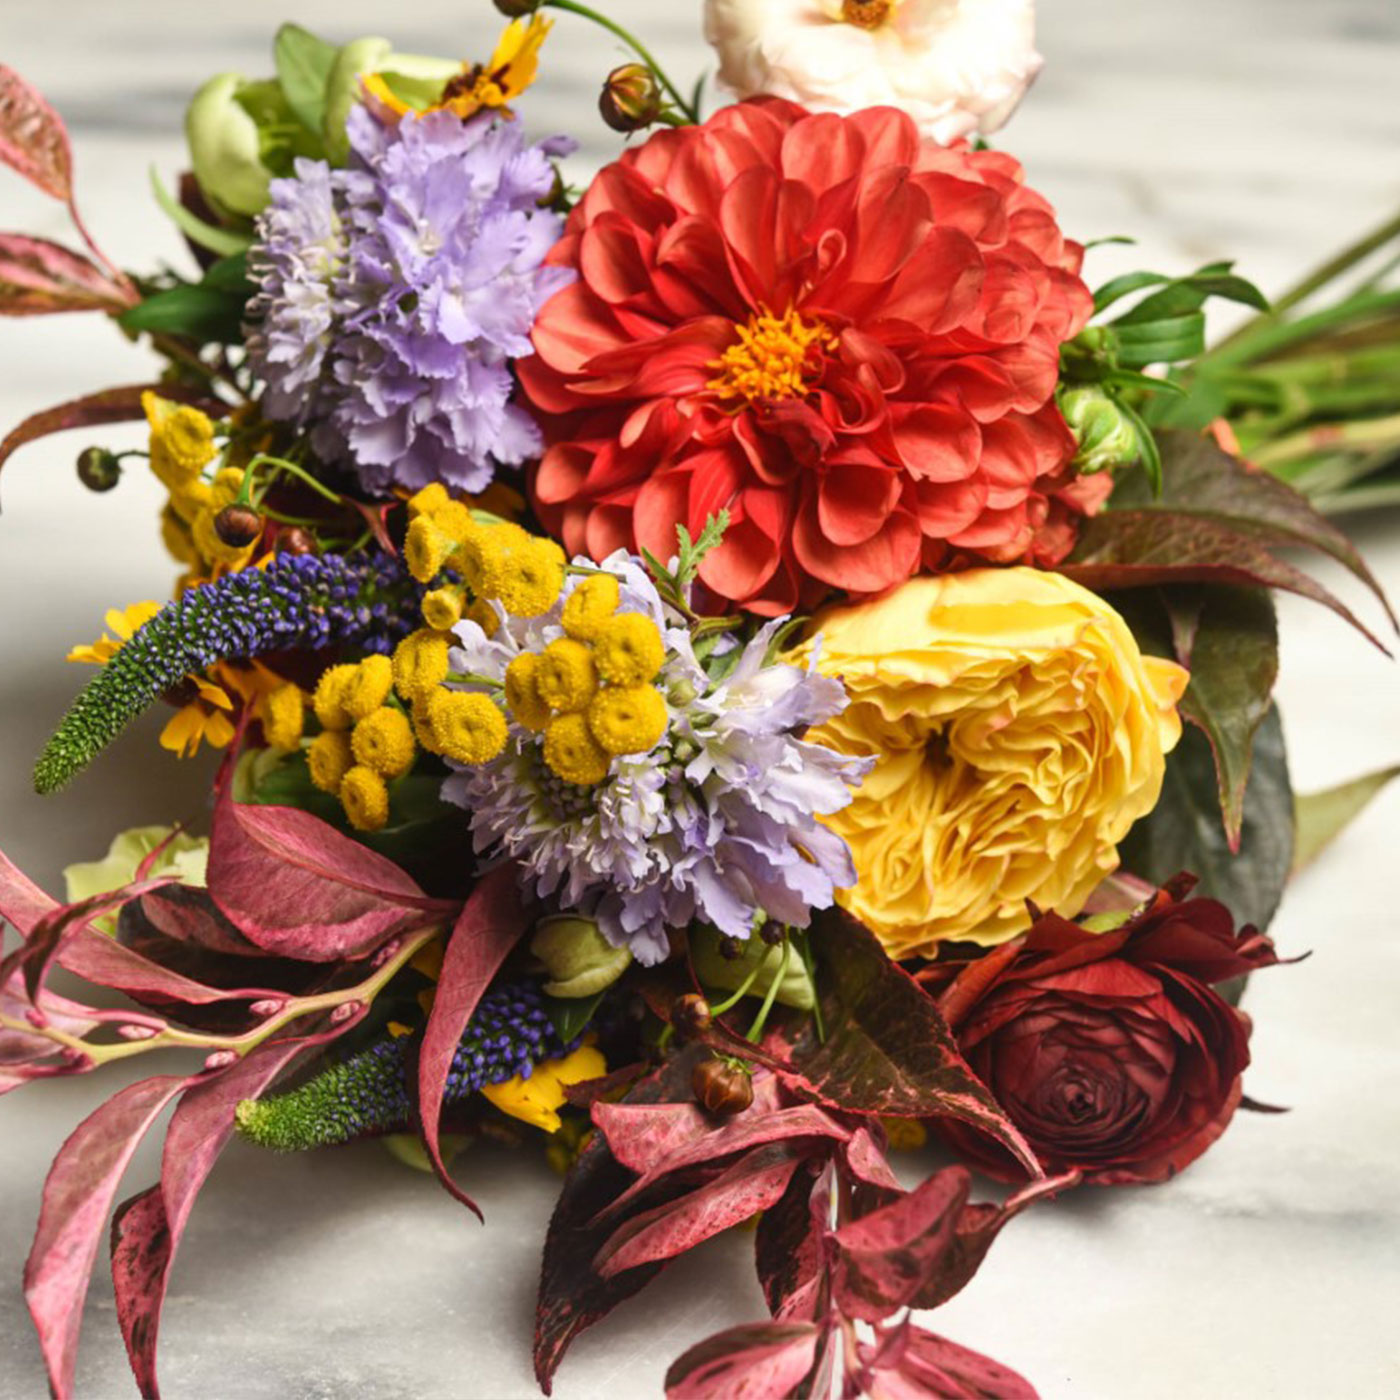 Mother's Day flowers from Eataly